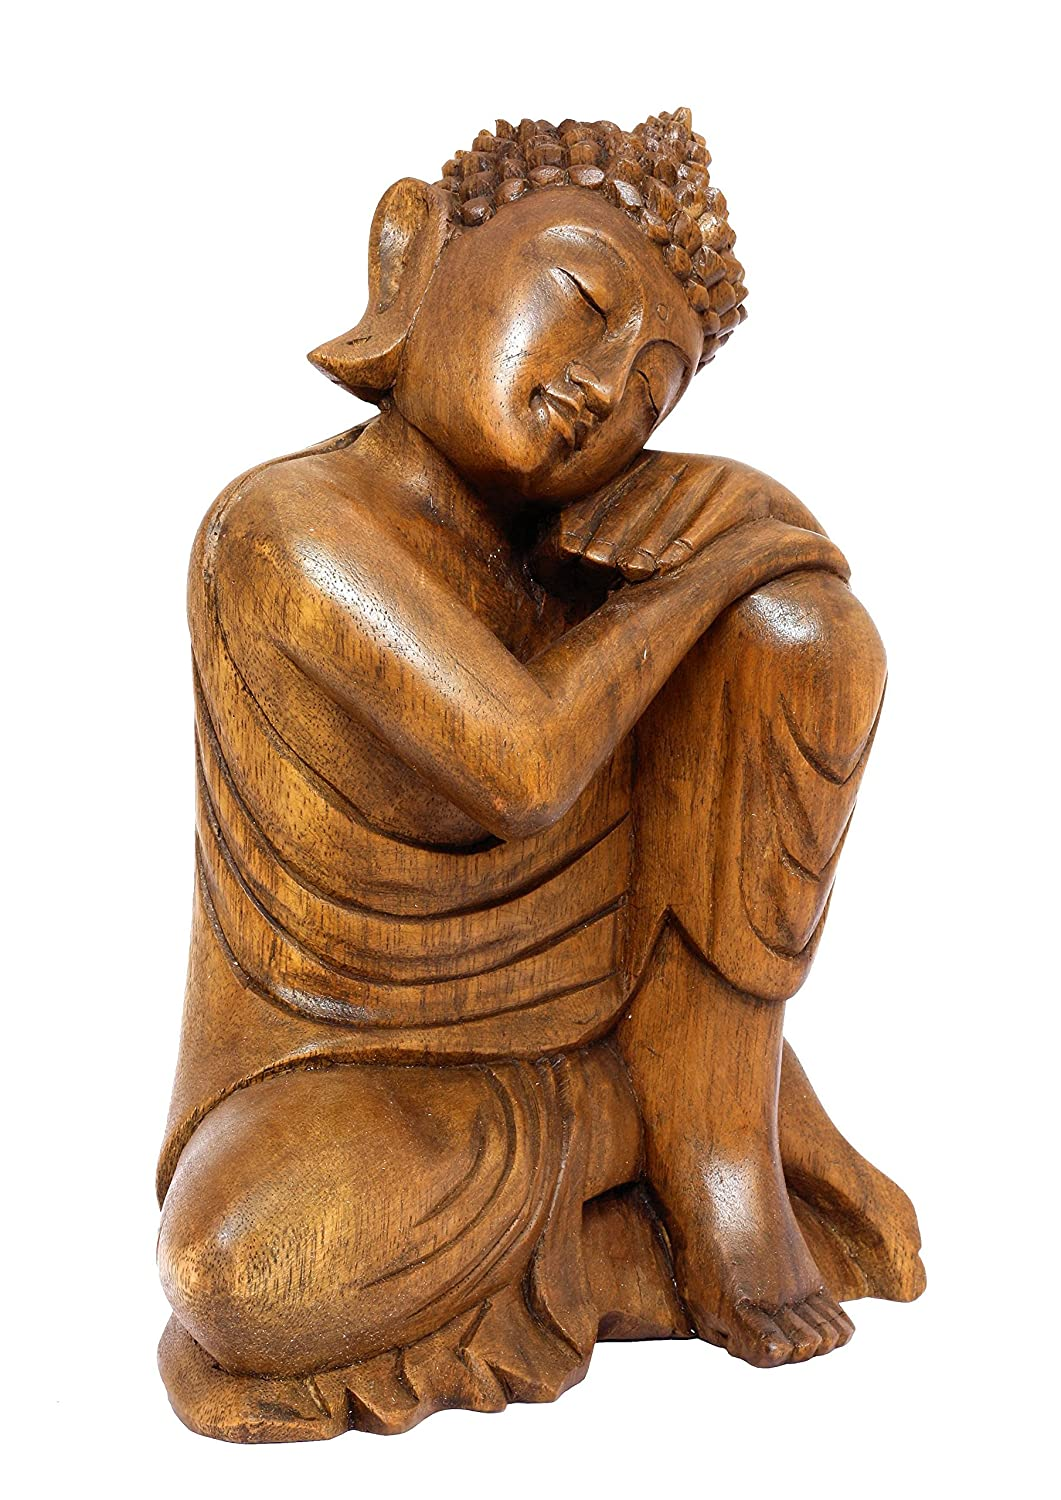 15 Wooden Serene Sleeping Buddha Statue Hand Carved Sculpture Figurine Handmade Home Decor Decorative Accent Traditional Modern Contemporary Handcrafted Art Large